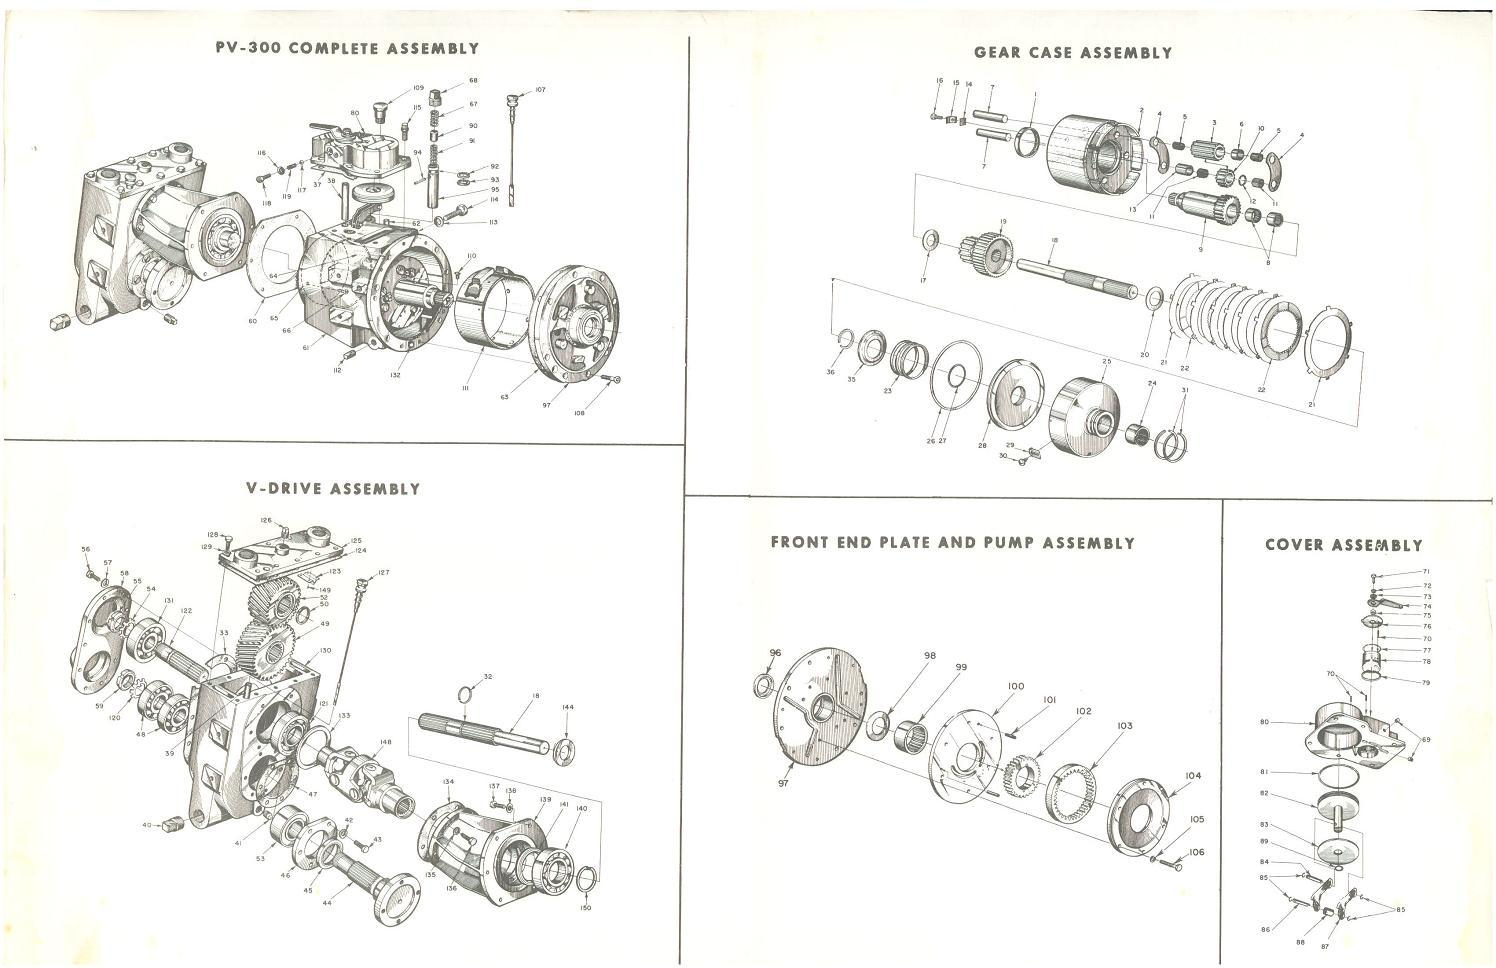 Ford Mel Engine Wiring Diagram And Ej25 1995 Fleetwood Southwind As Well 2000 Silverado 4x4 Wih 5l V8 Cranks But Wont